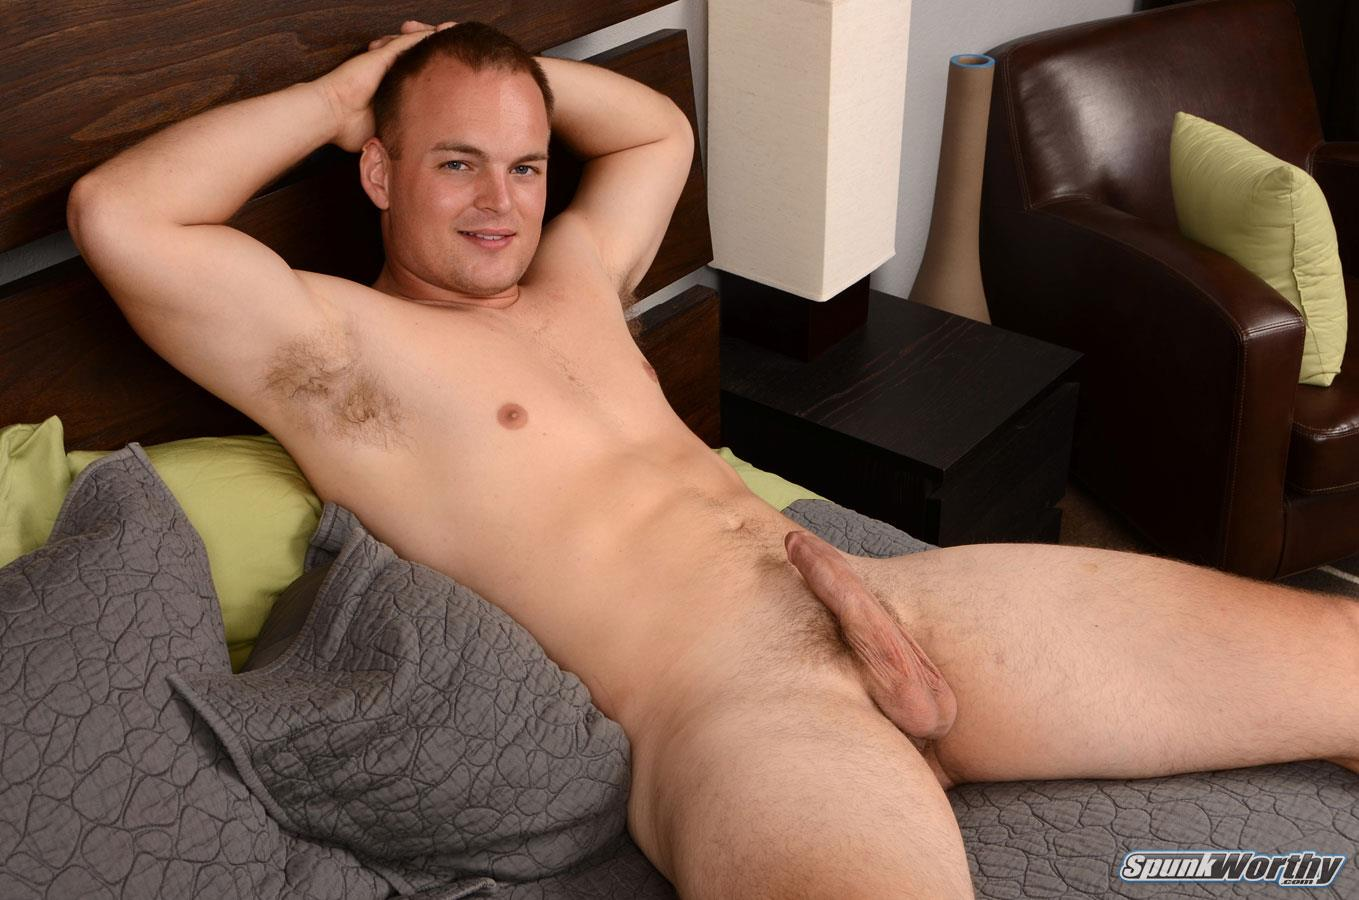 SpunkWorthy Cole Beefy Young Marine Jerking Off His Big Cock Masturbation Amateur Gay Porn 07 Amateur Beefy Straight Young Marine Jerking Off